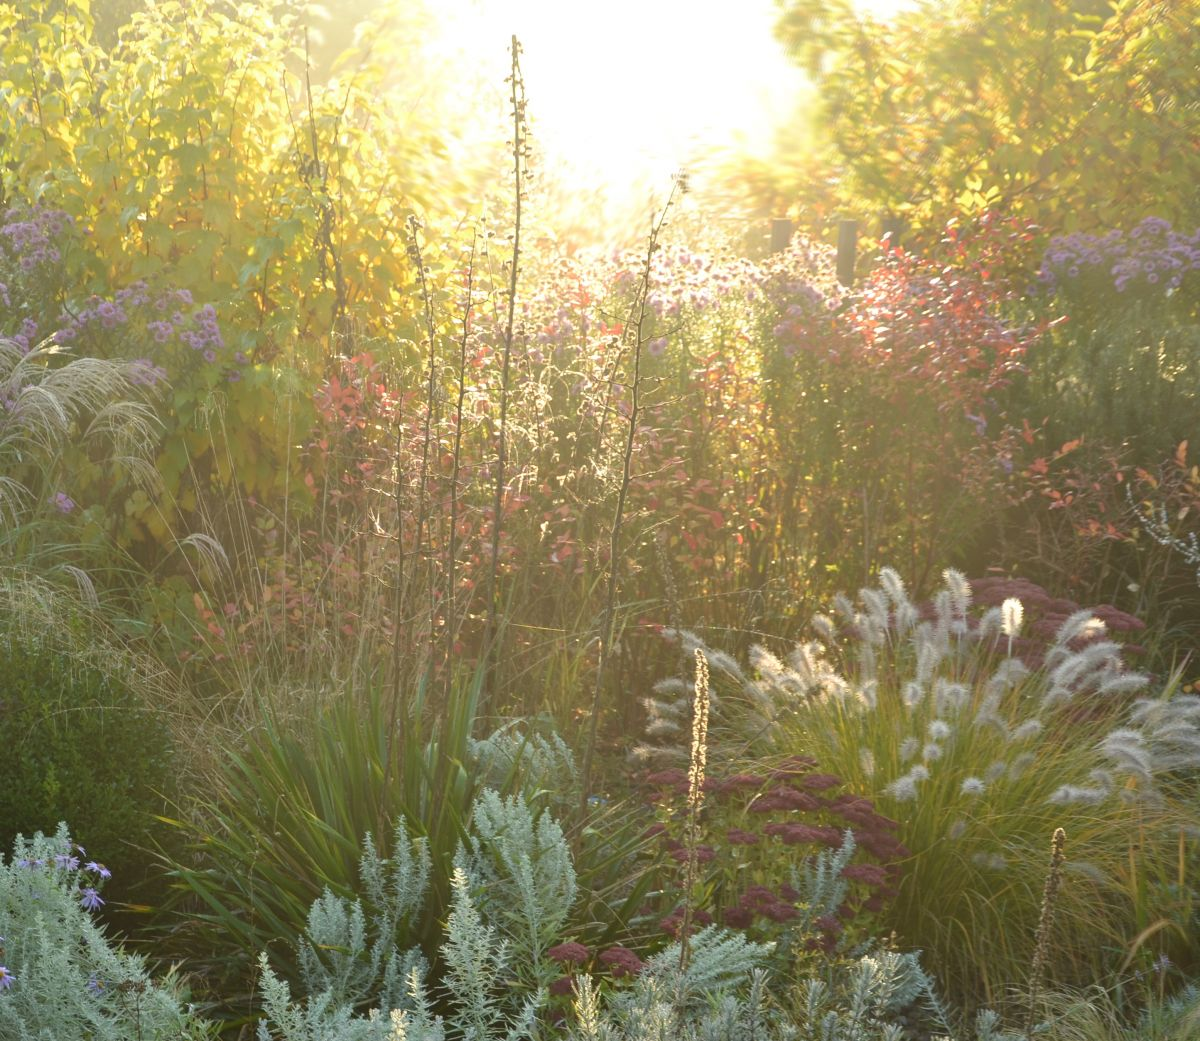 Perennials in the morning light